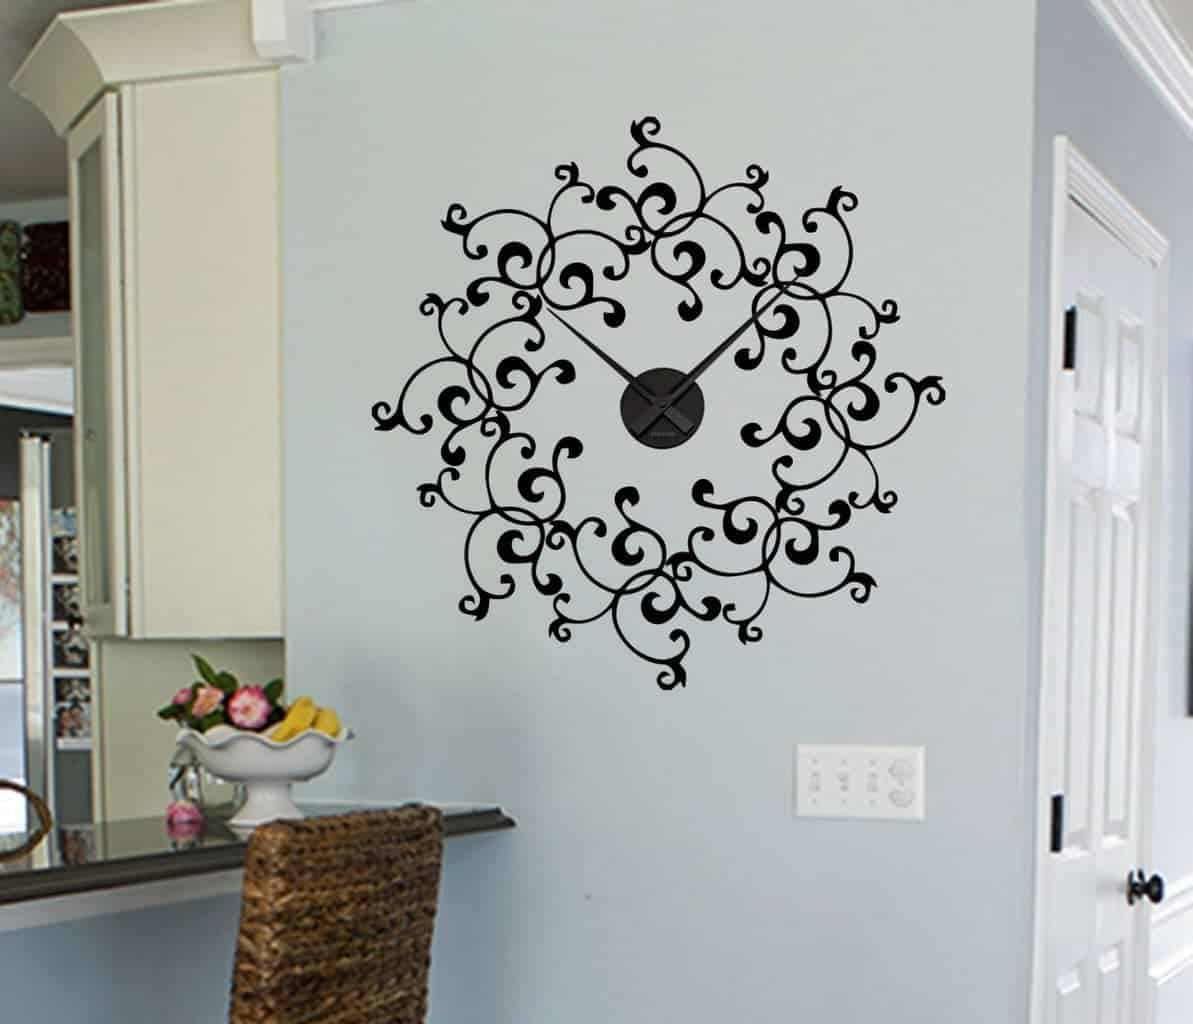 sticker clock | Wall decal sticker clock